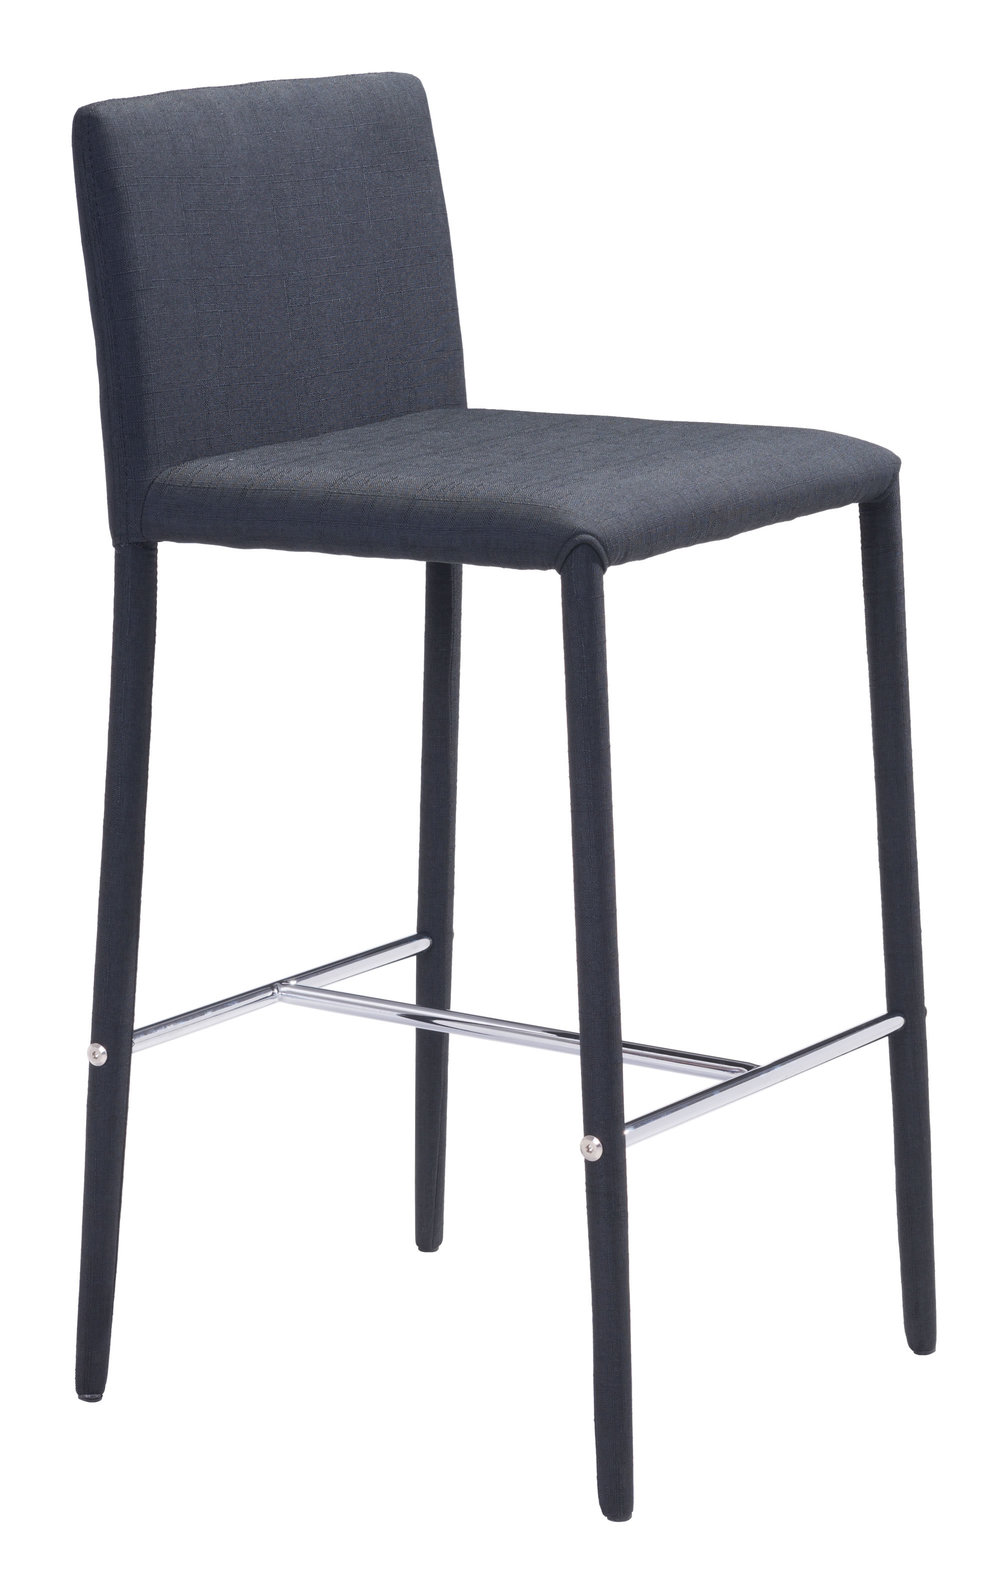 Zuo Modern Contemporary - Confidence Counter Chair - Set of 2 - Black